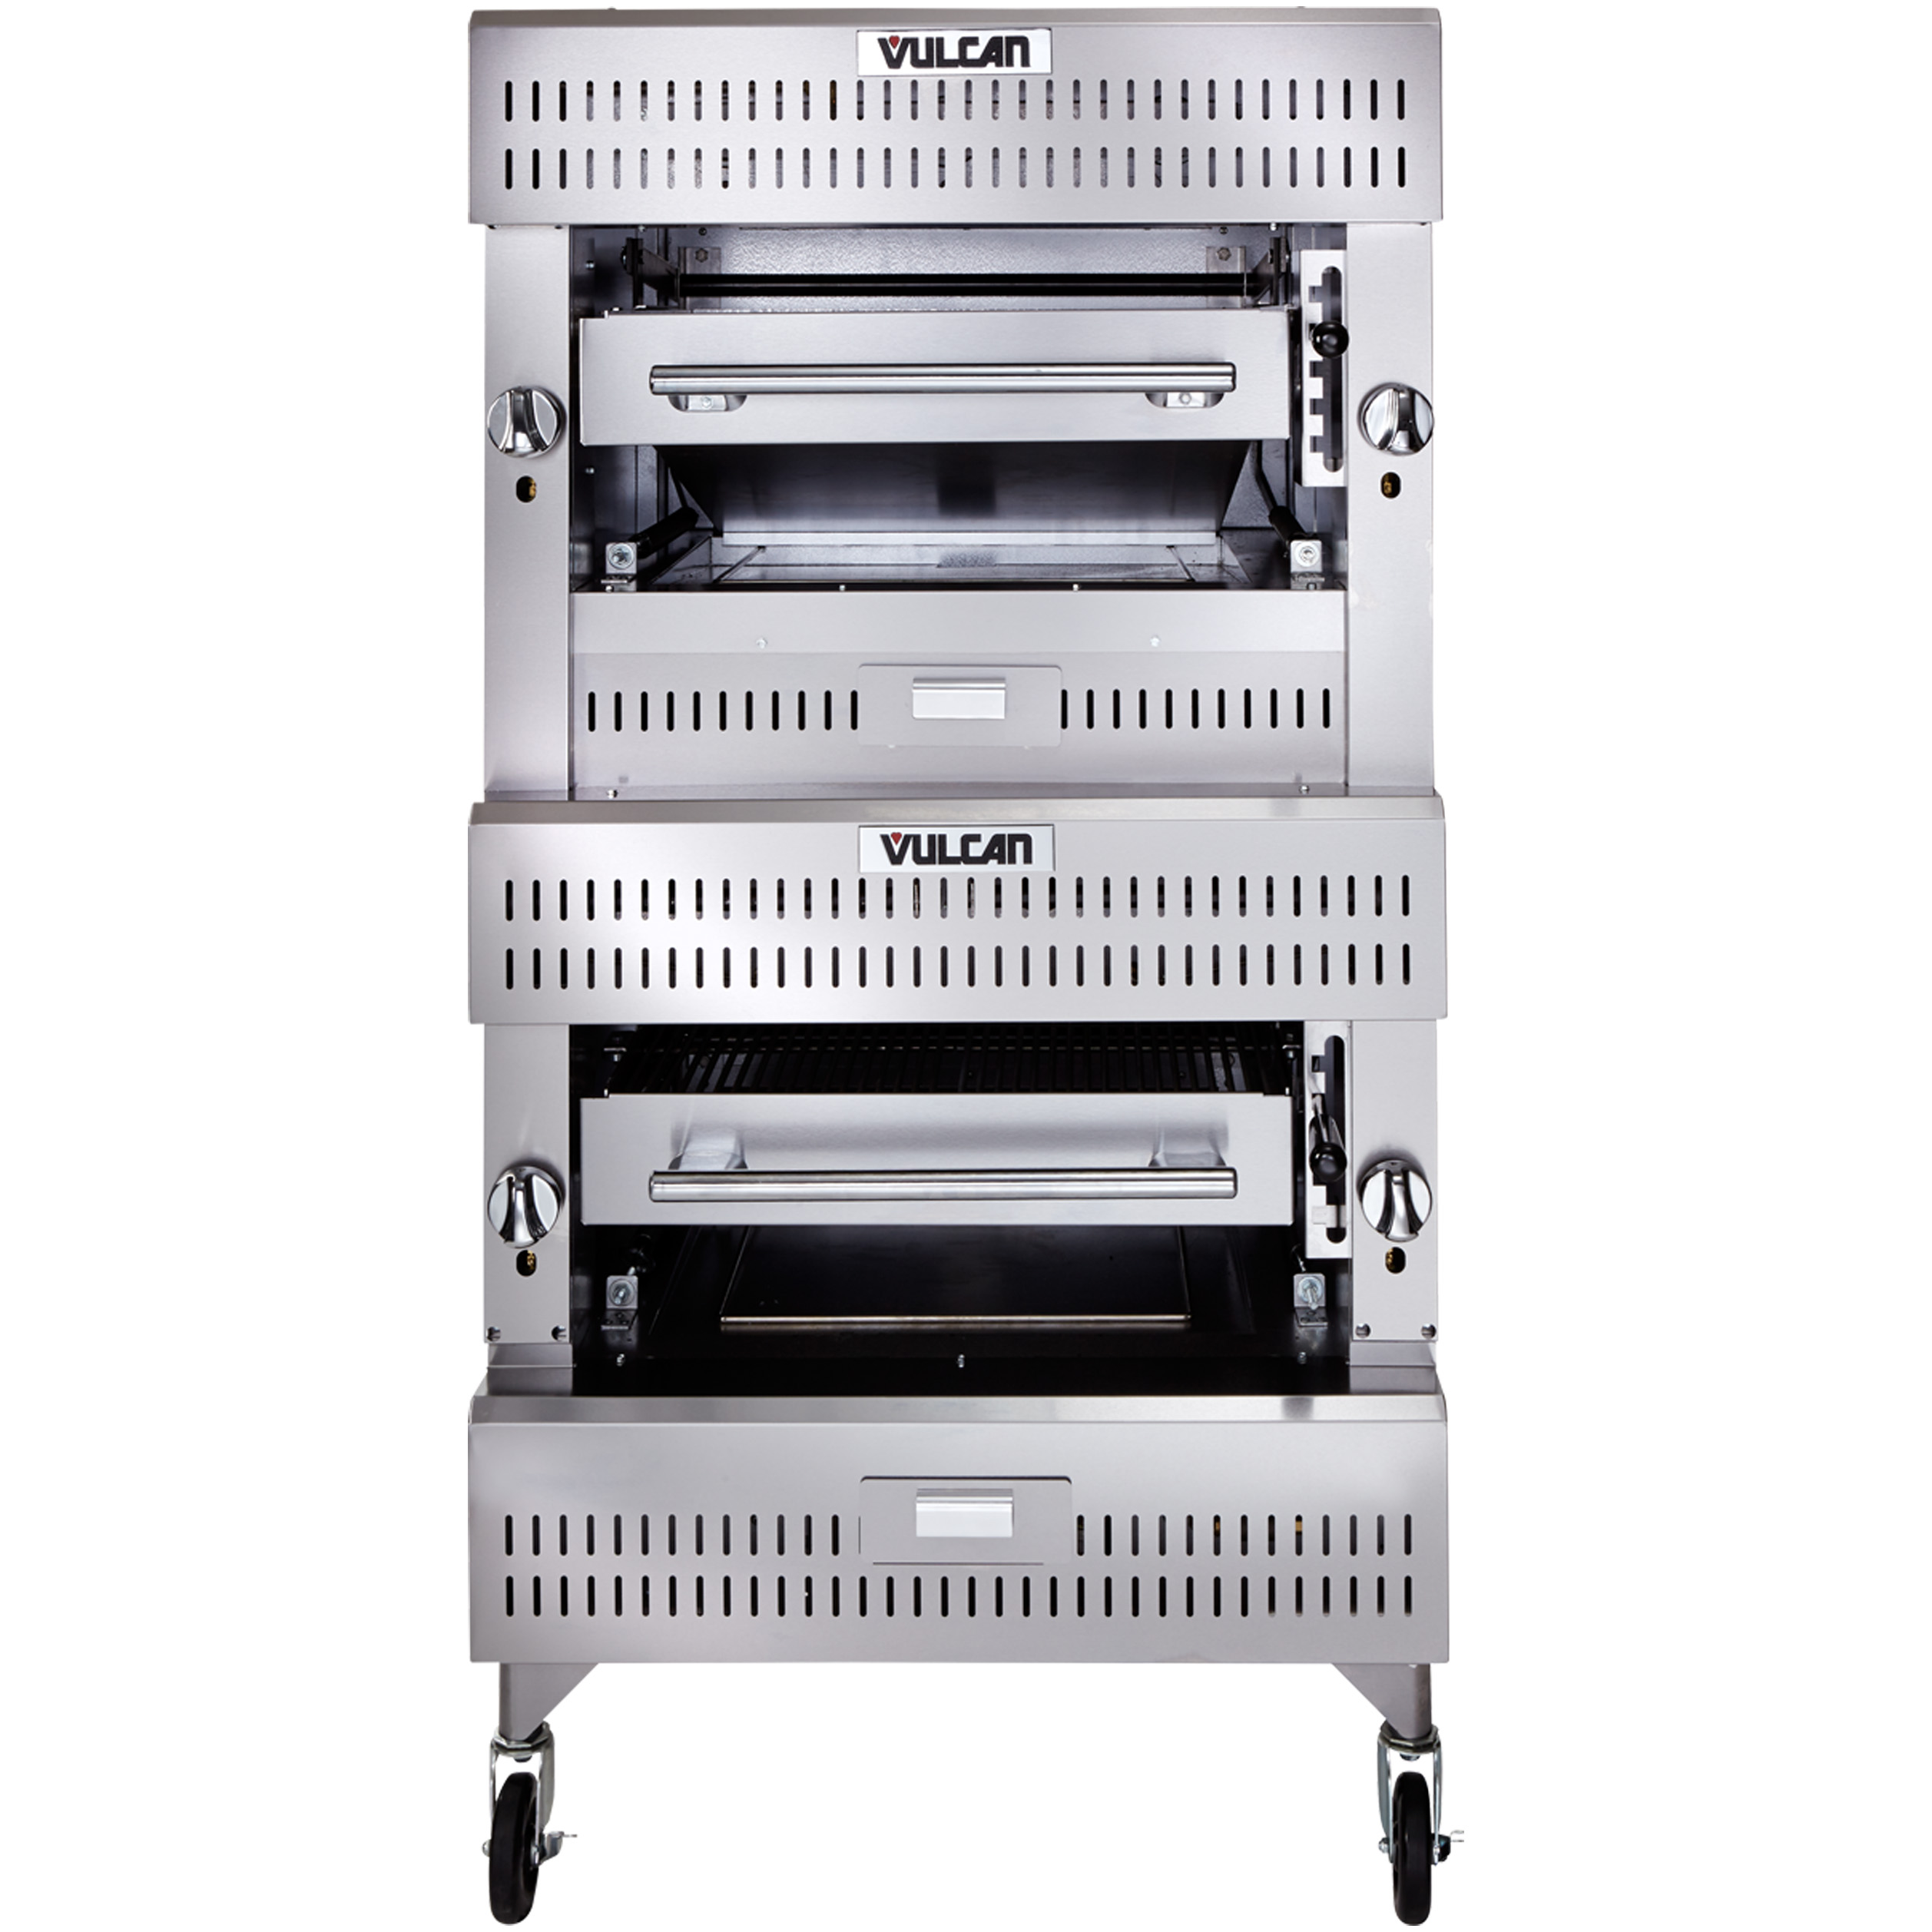 Vulcan VBB2 broiler, deck-type, gas